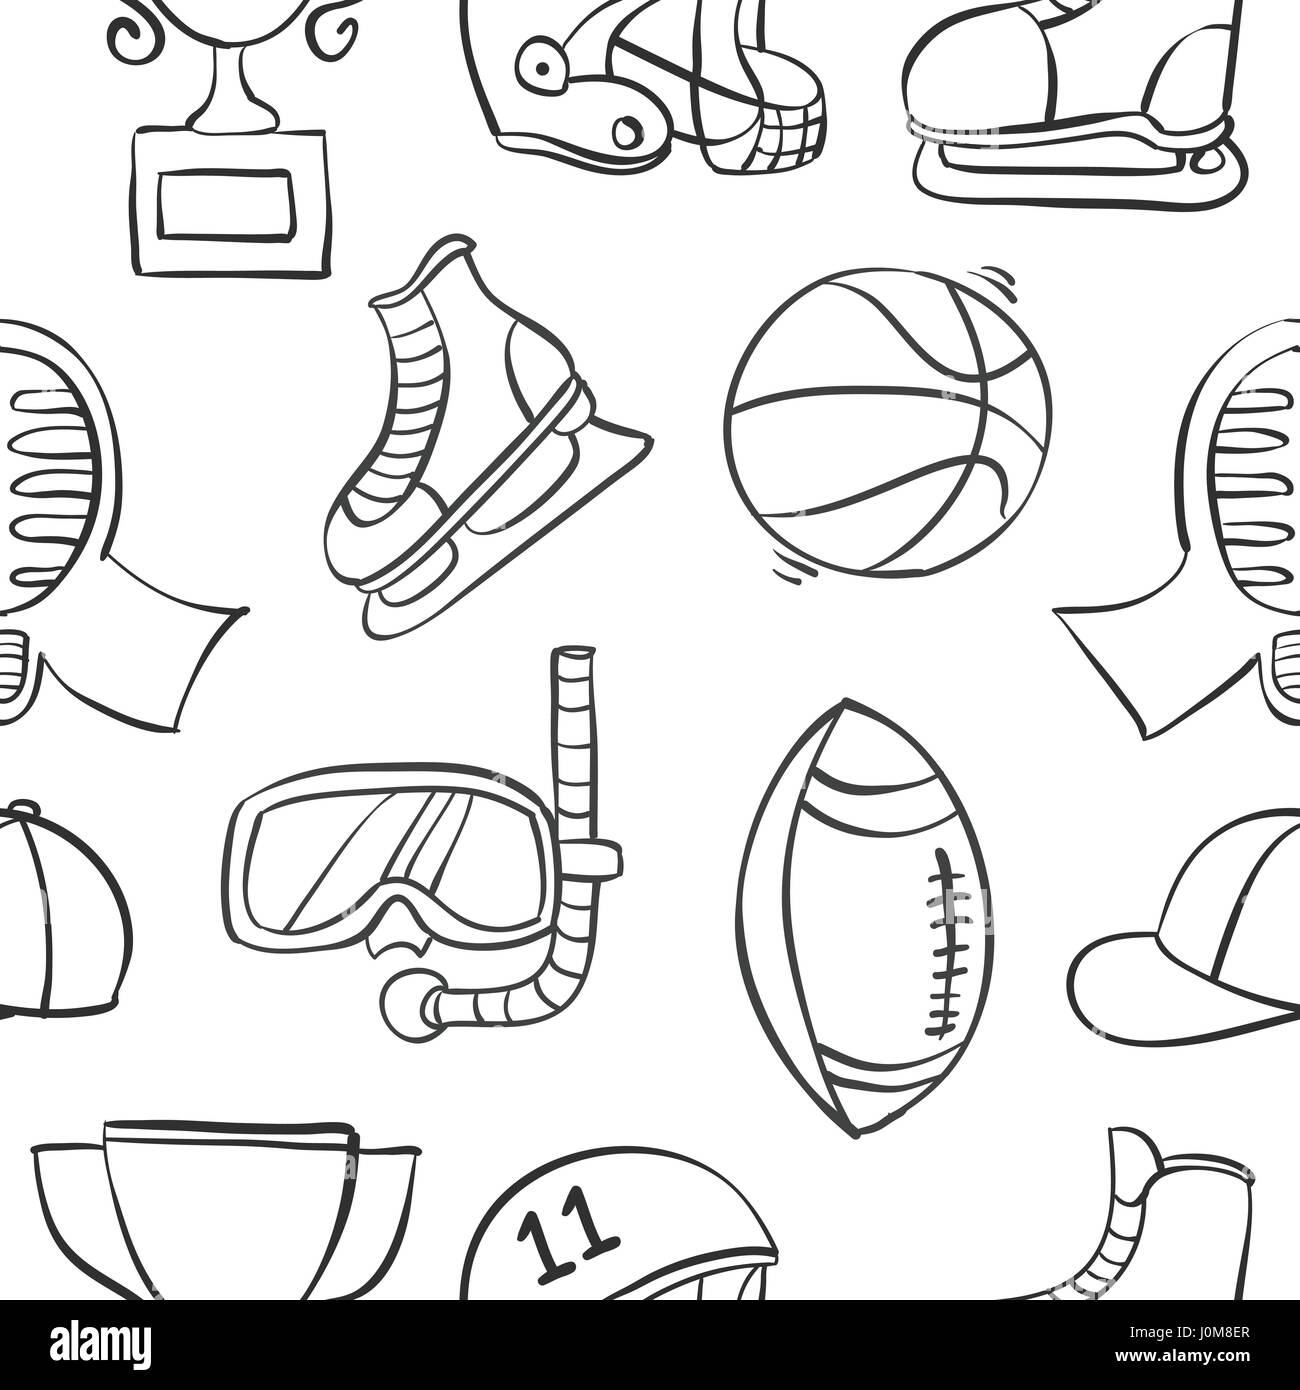 Collection of sport equipment style doodles - Stock Image